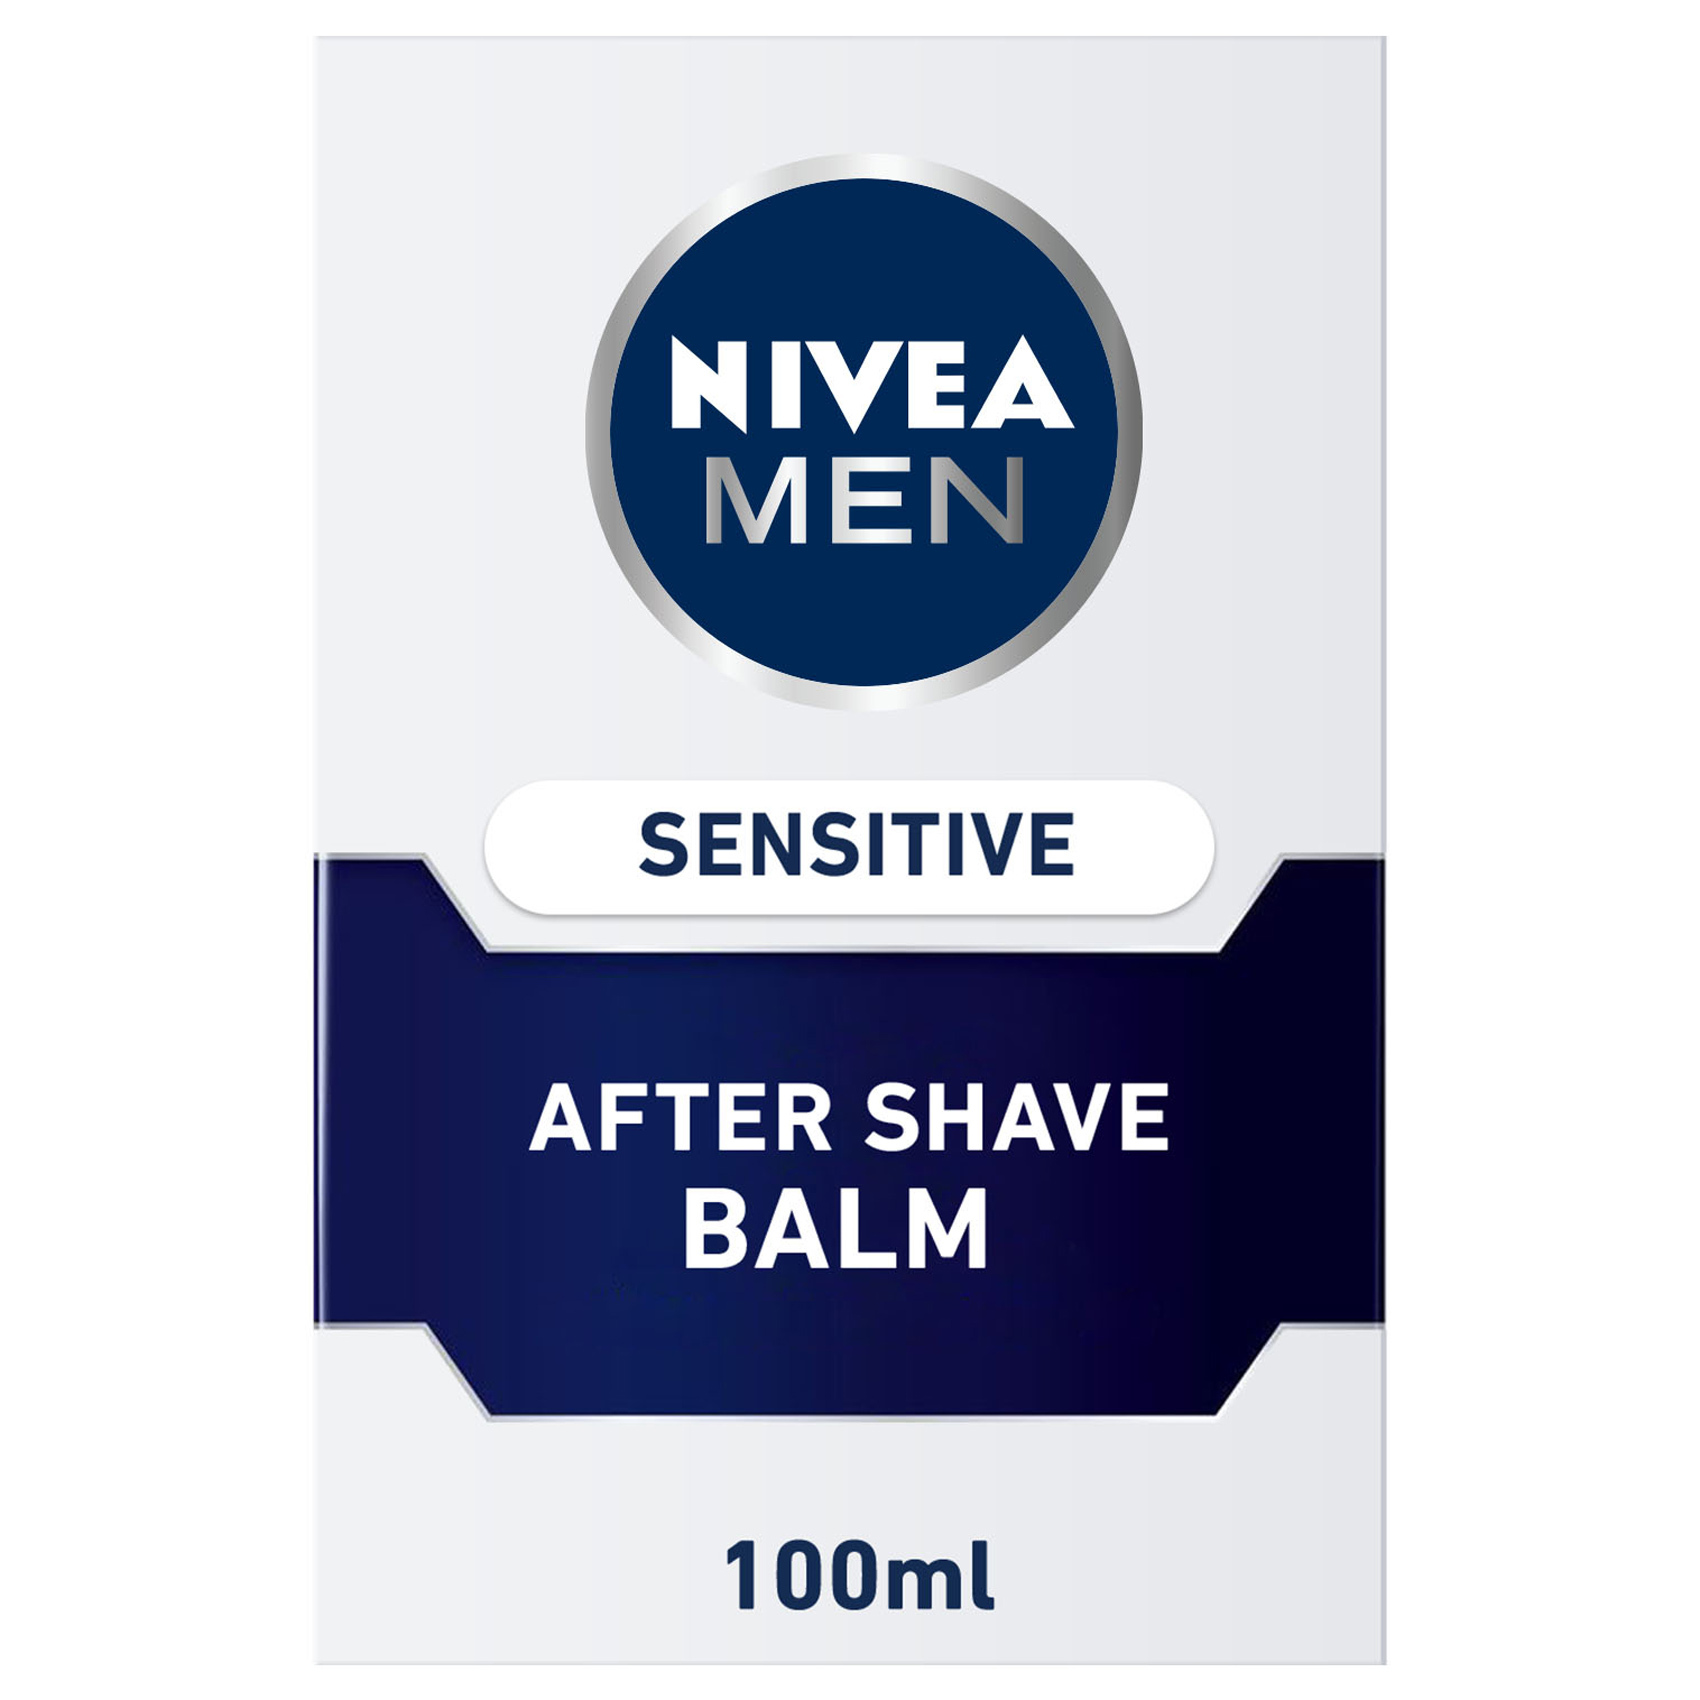 NIVEA MEN A/SHV SENSITIVE 100ML